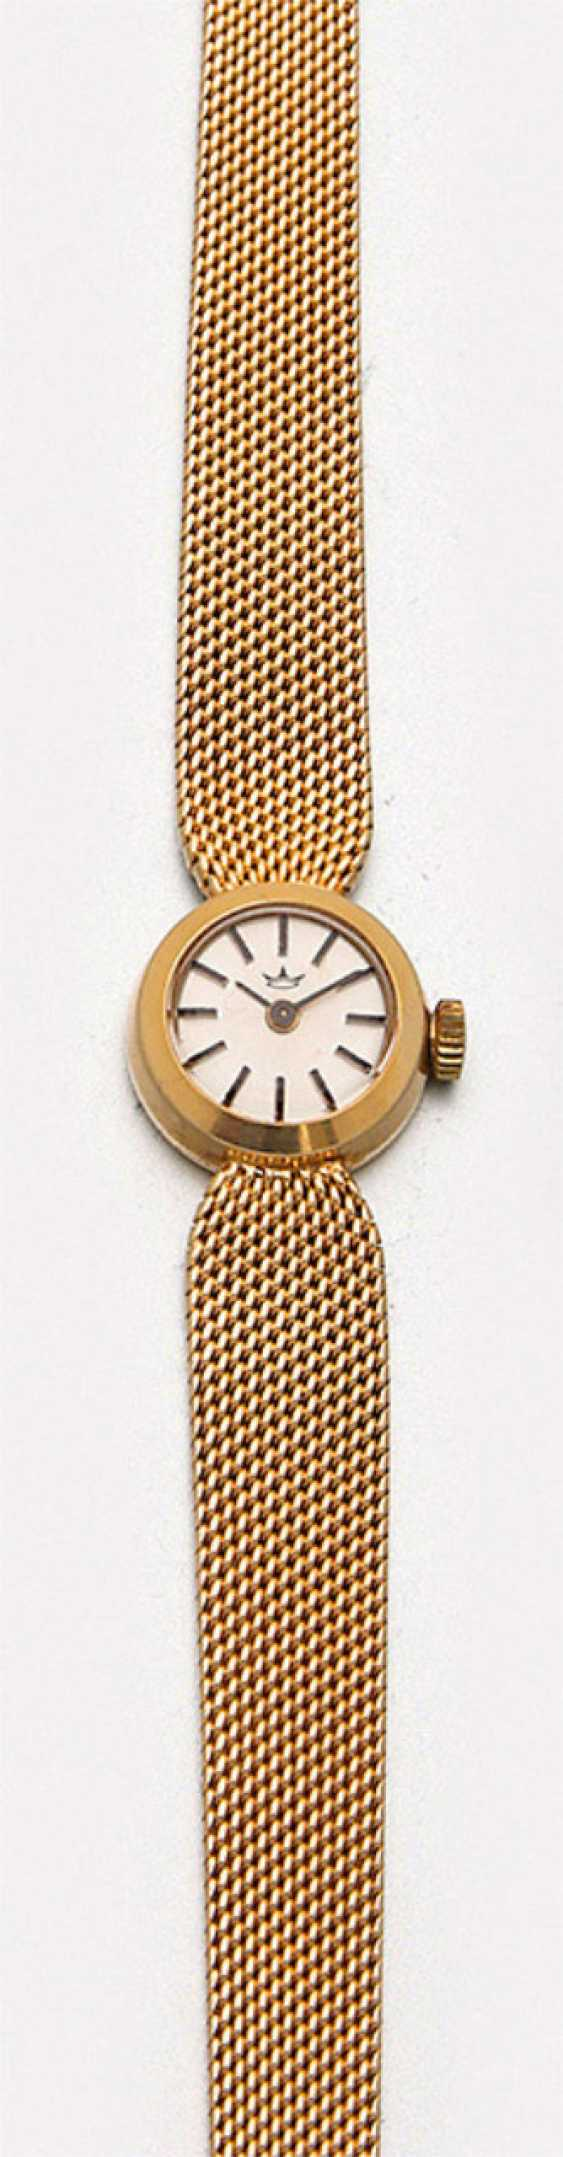 Ladies wrist watch from the 50s - photo 1